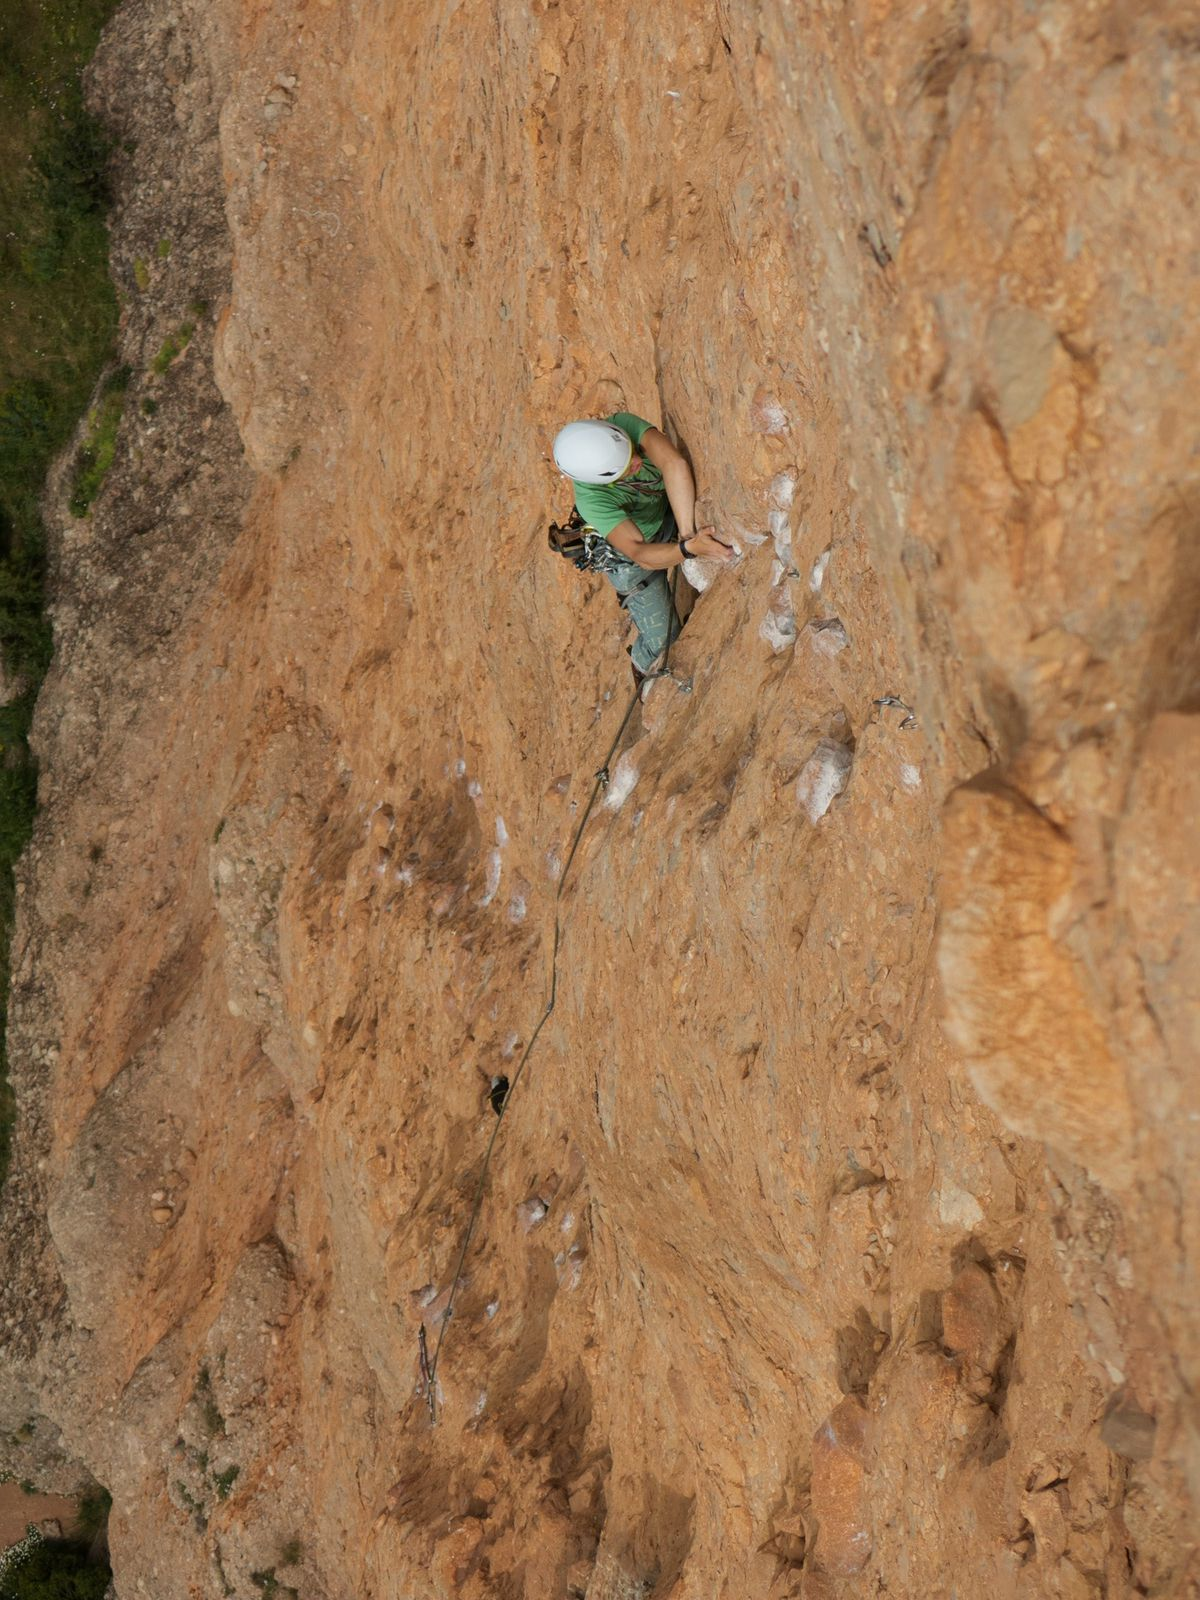 Passage en dülfer en milieu de L3 (6b+), technique